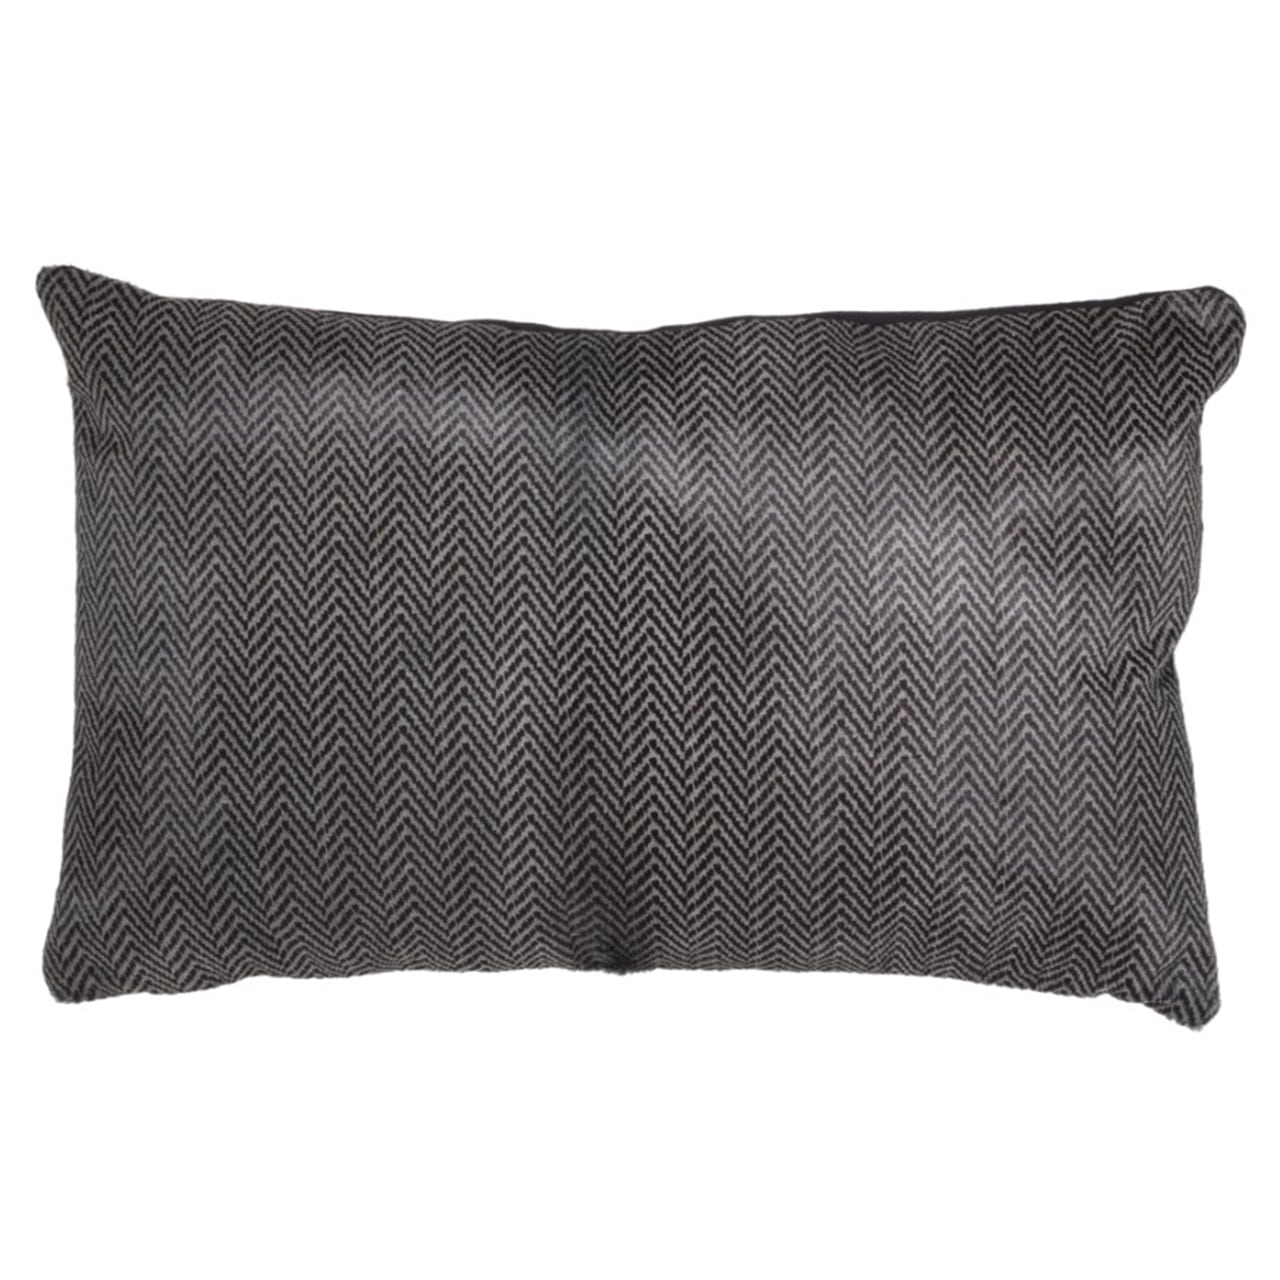 NEW-Cavallino Pillow- Tweed 1039-600 PEG- 35x55cm (CPTWE1039600BL3555) - ANVOGG FEEL SHEARLING | ANVOGG